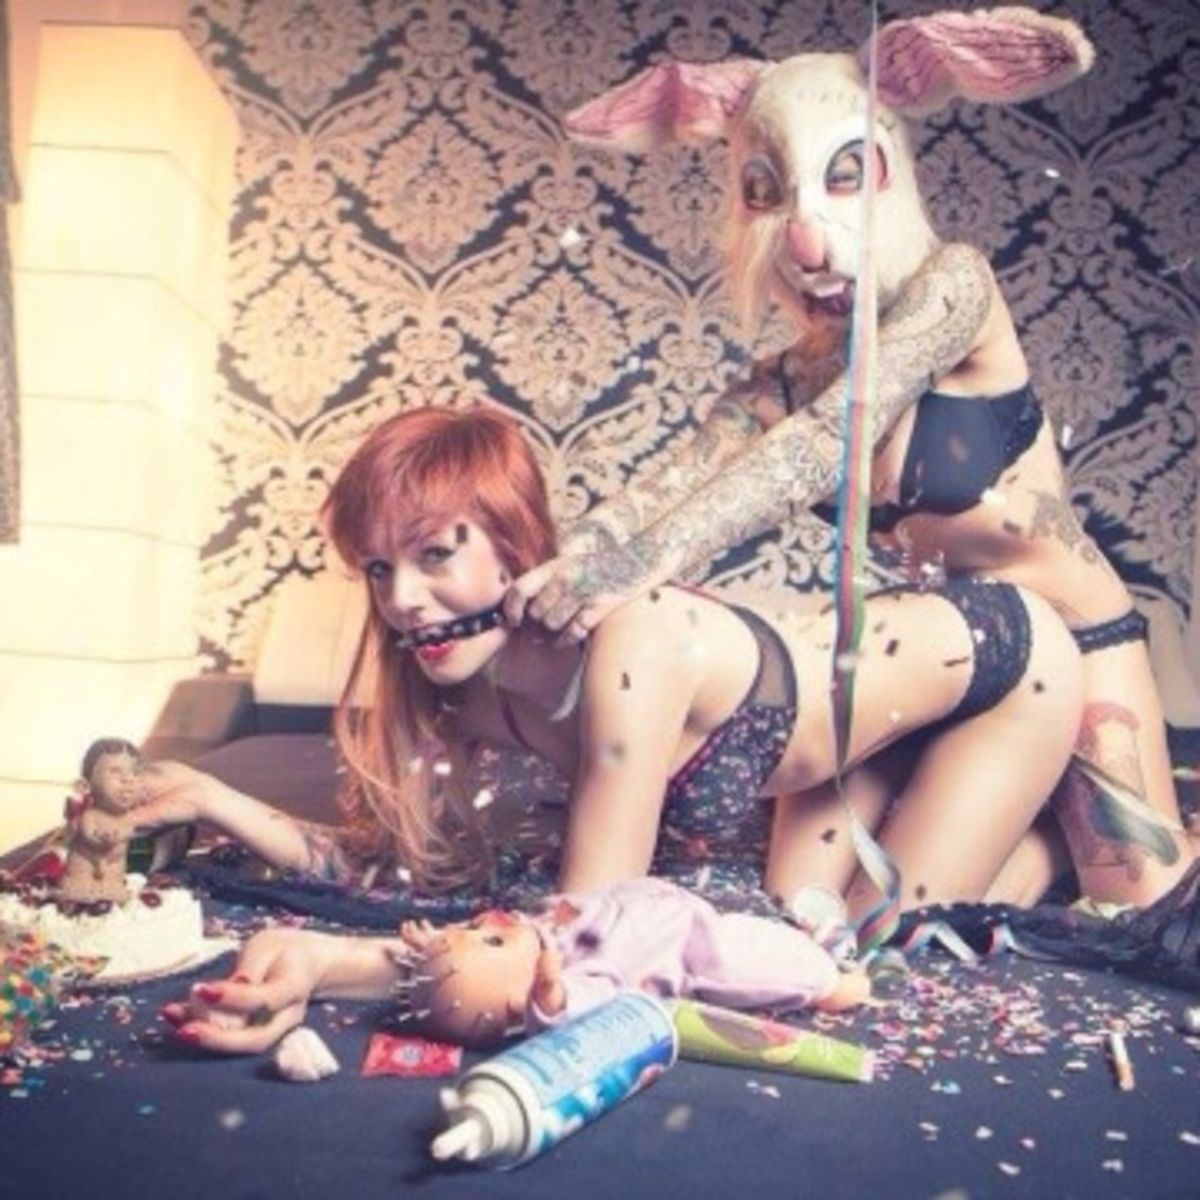 Sexy girls in bunny costume pillow fight